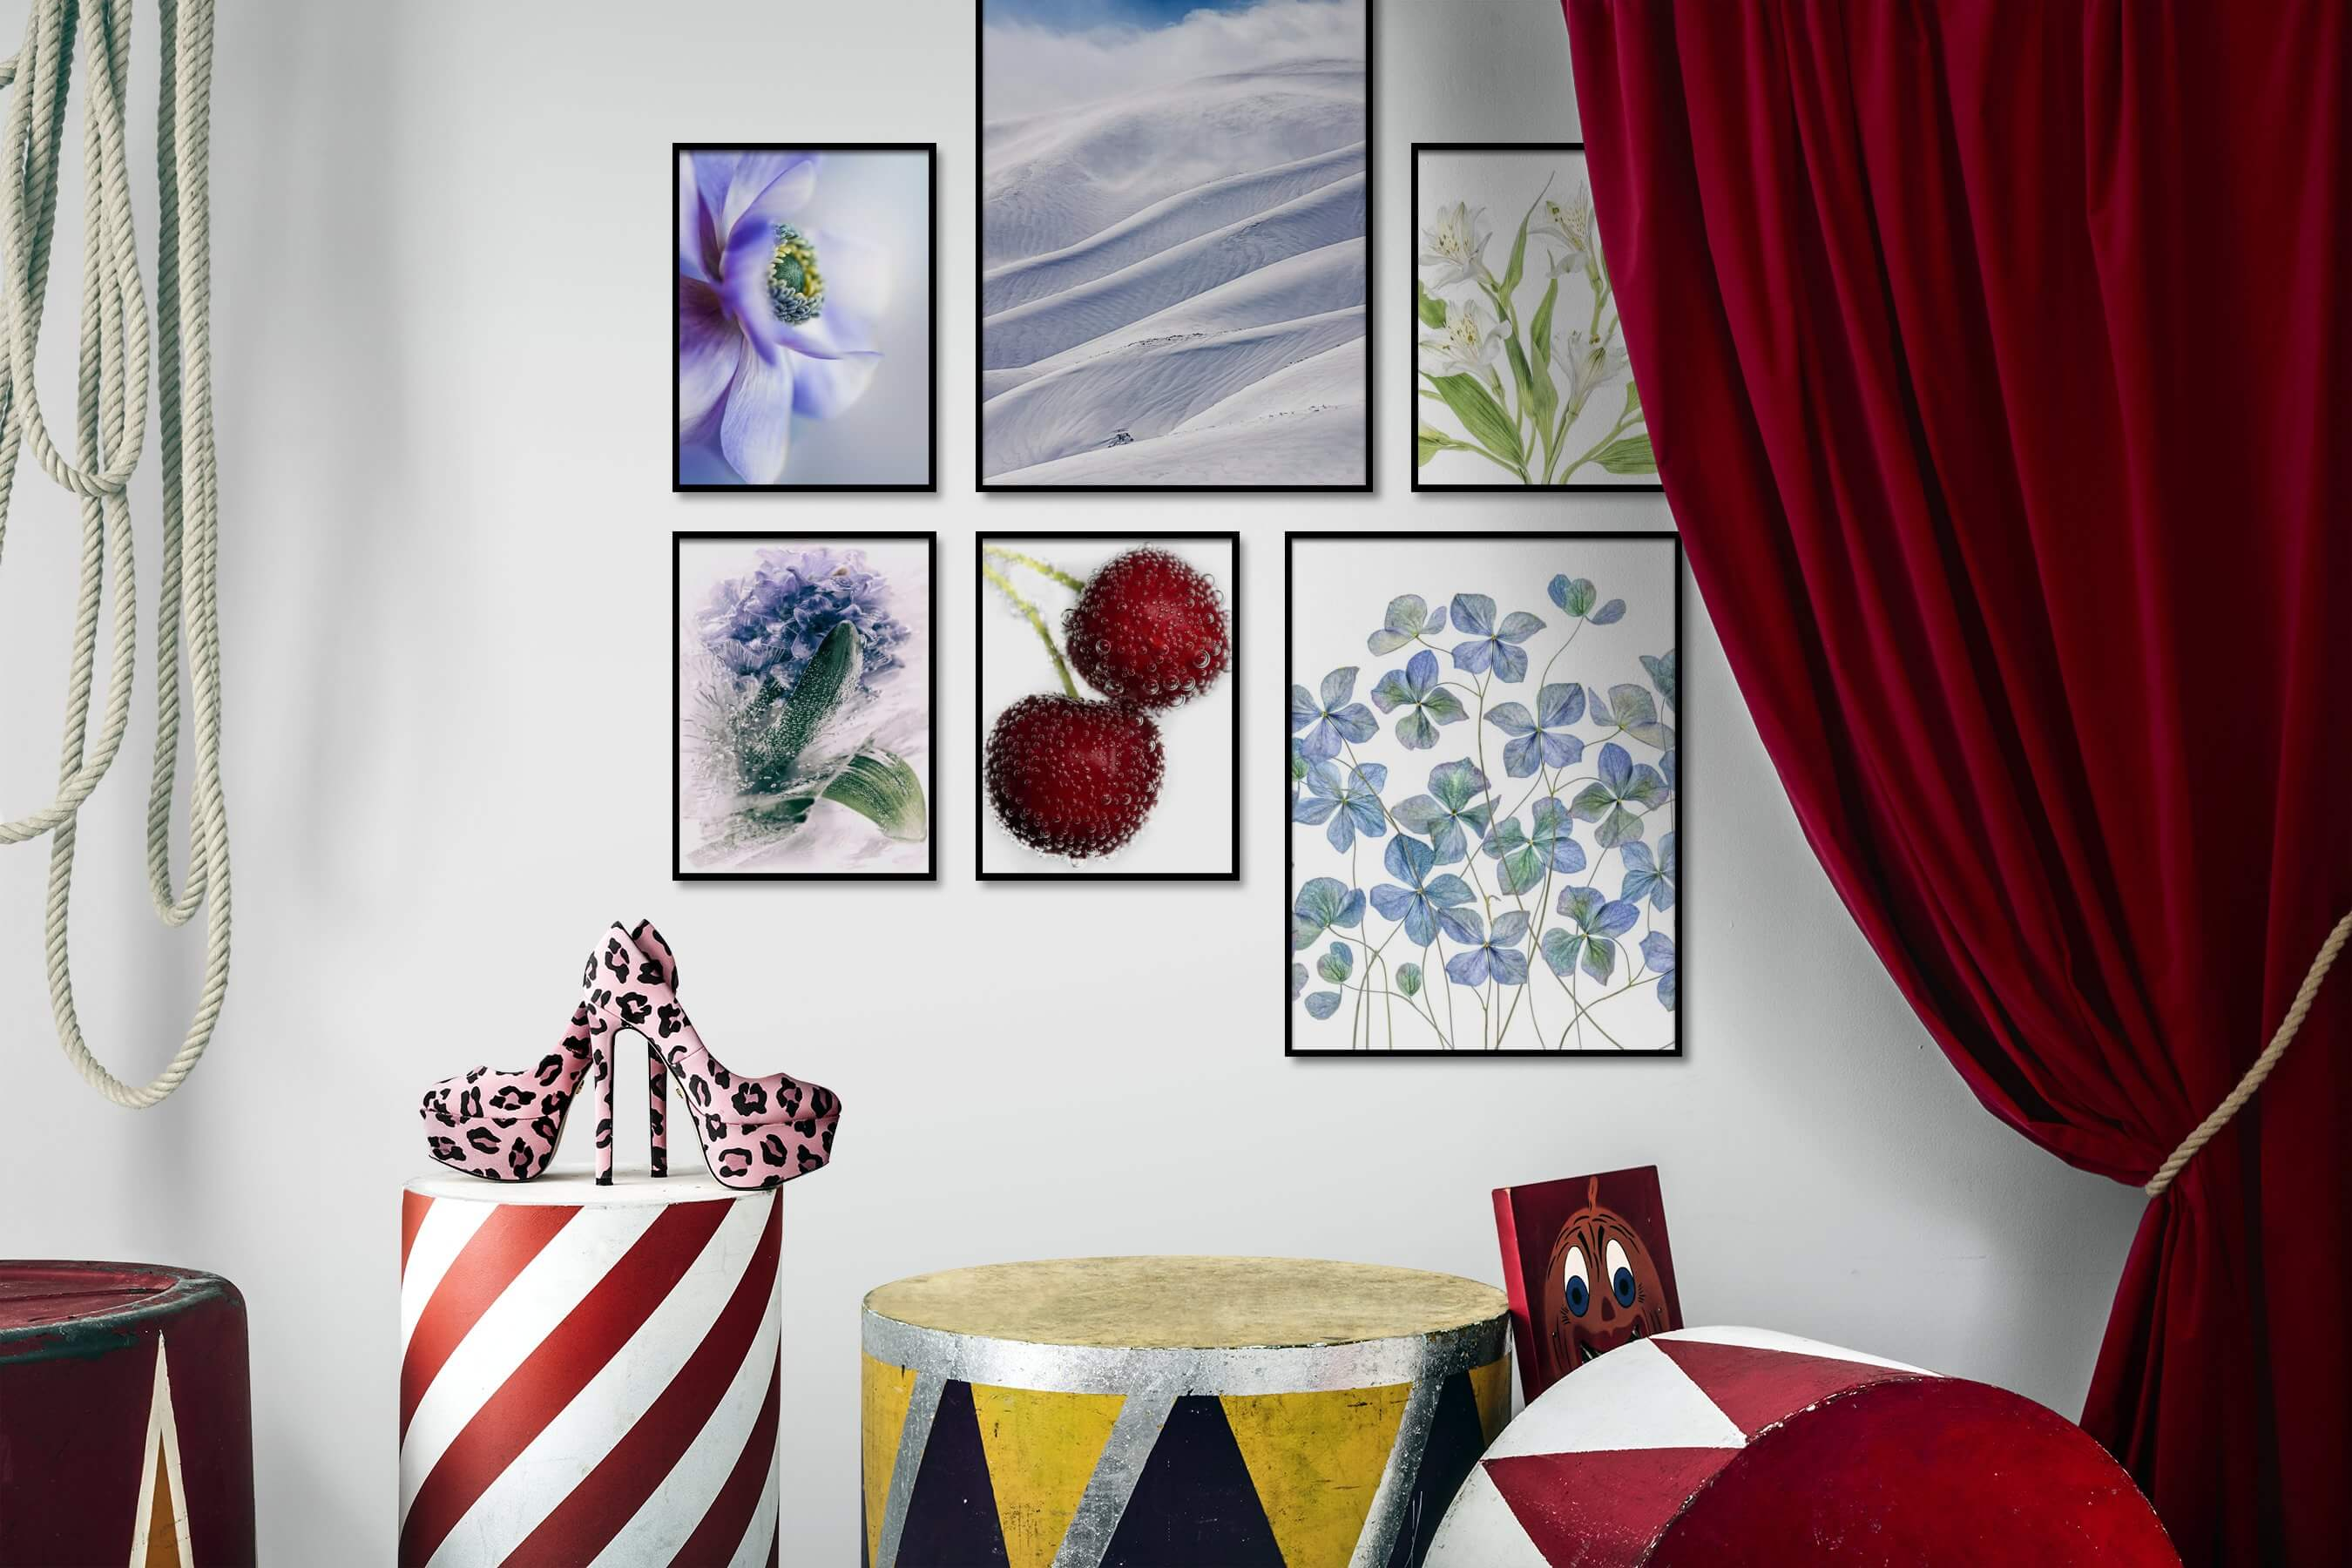 Gallery wall idea with six framed pictures arranged on a wall depicting Flowers & Plants, For the Moderate, Nature, Bright Tones, and For the Minimalist